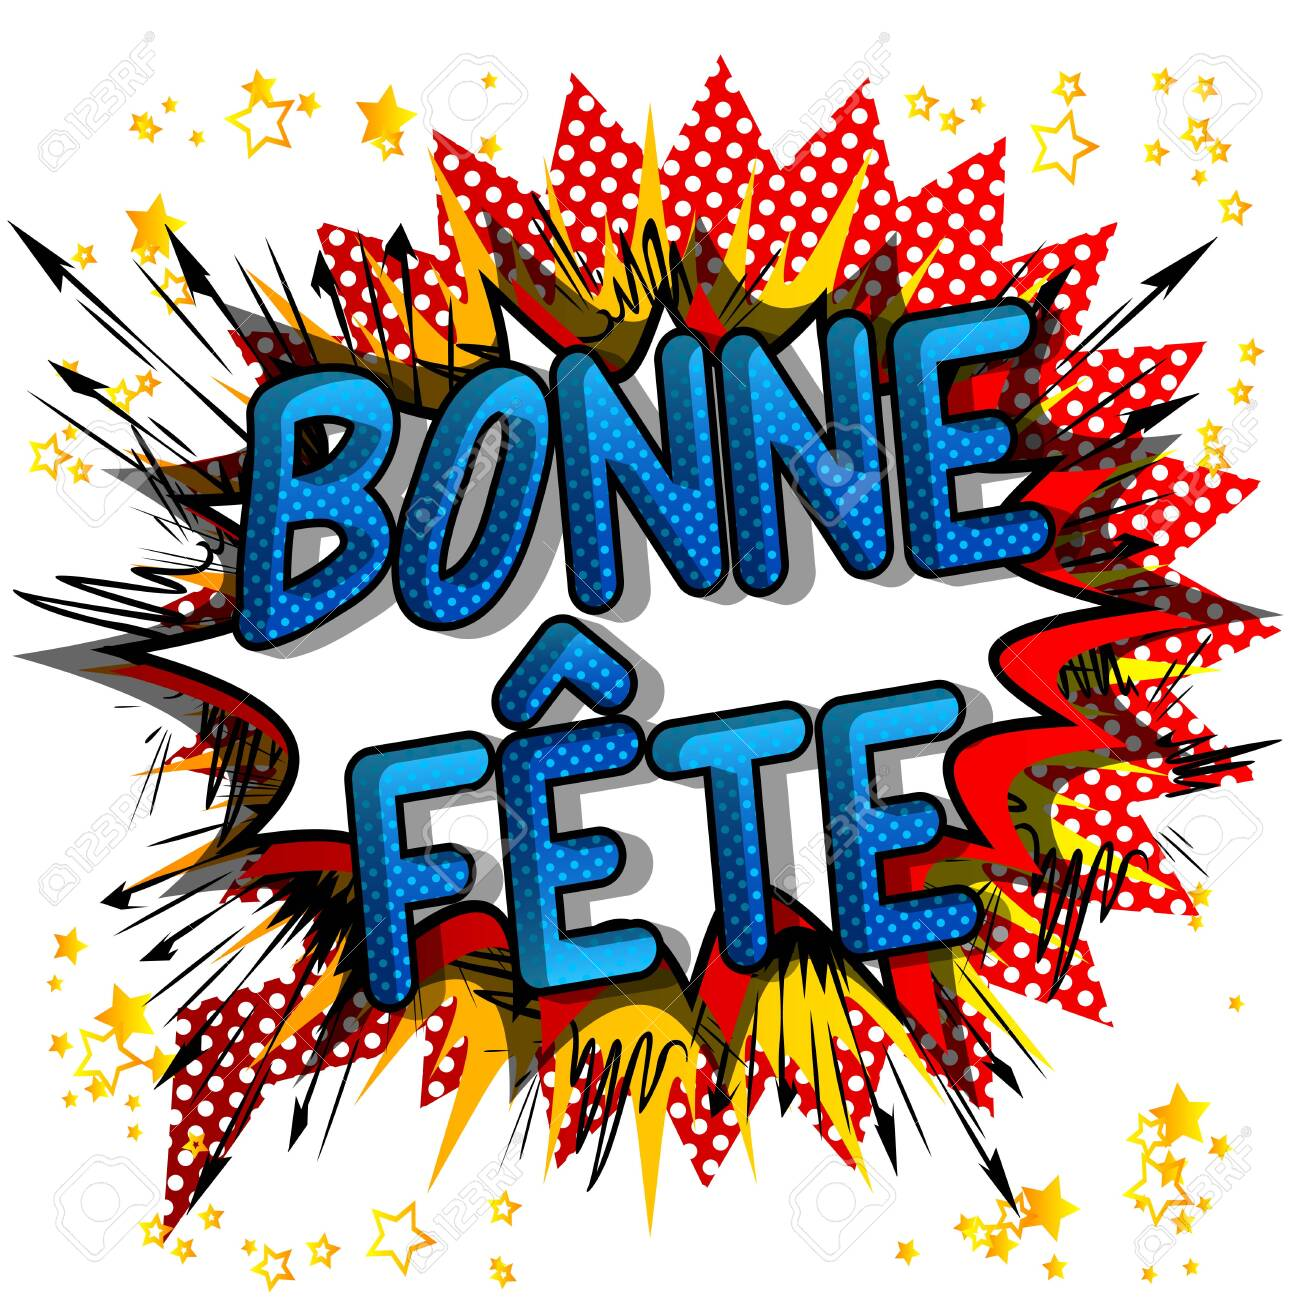 Bonne Fete Have A Good Celebration In Franch And Happy Birthday